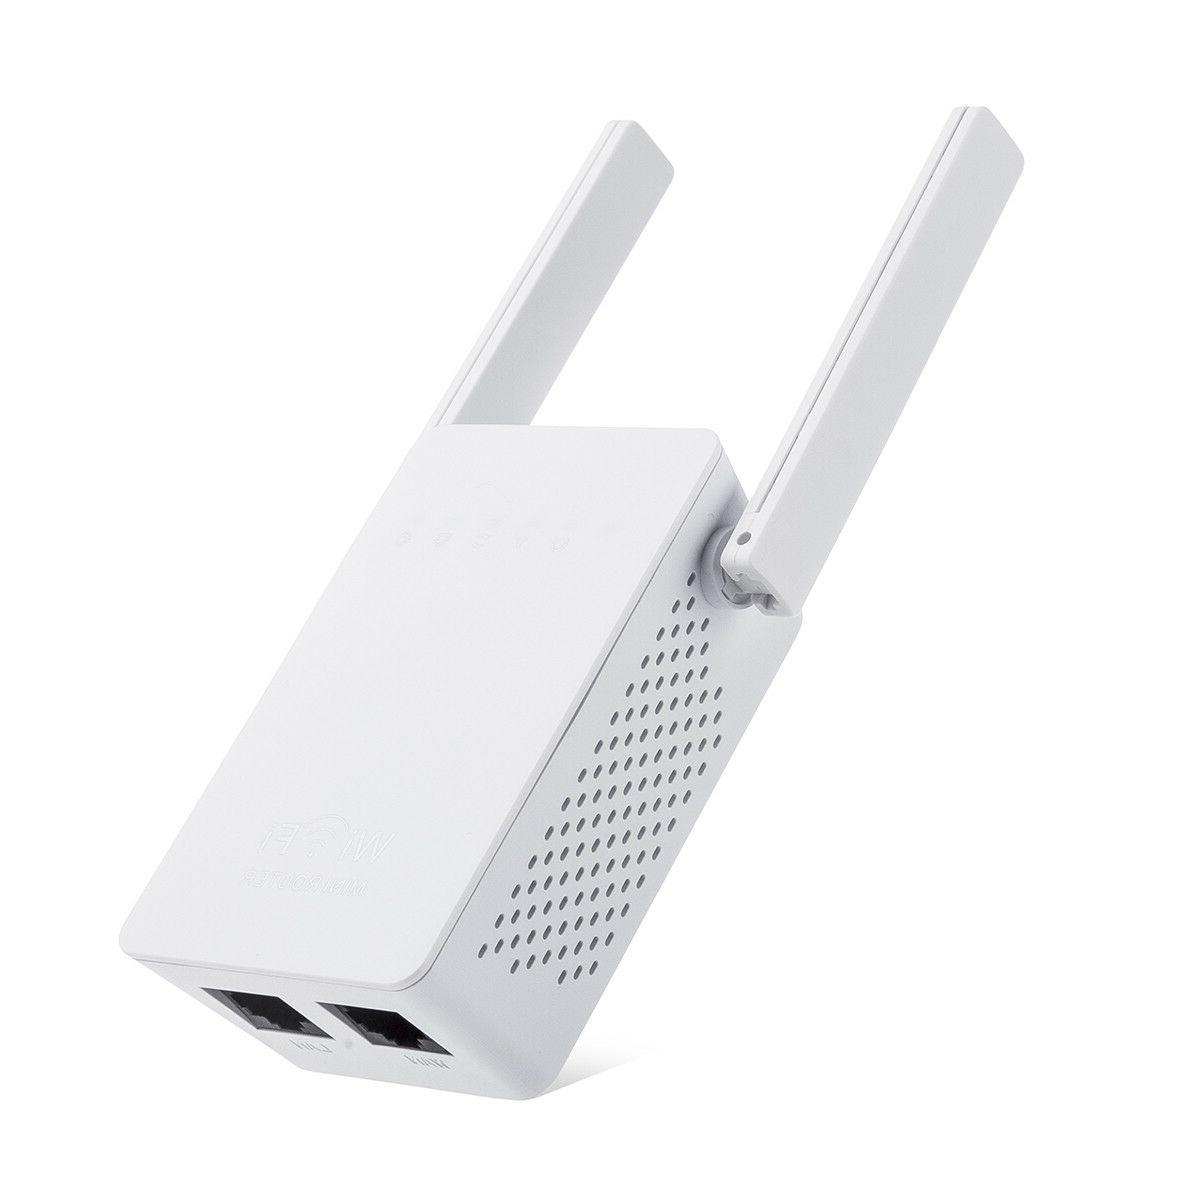 300Mbps WiFi Repeater Hotspot AP